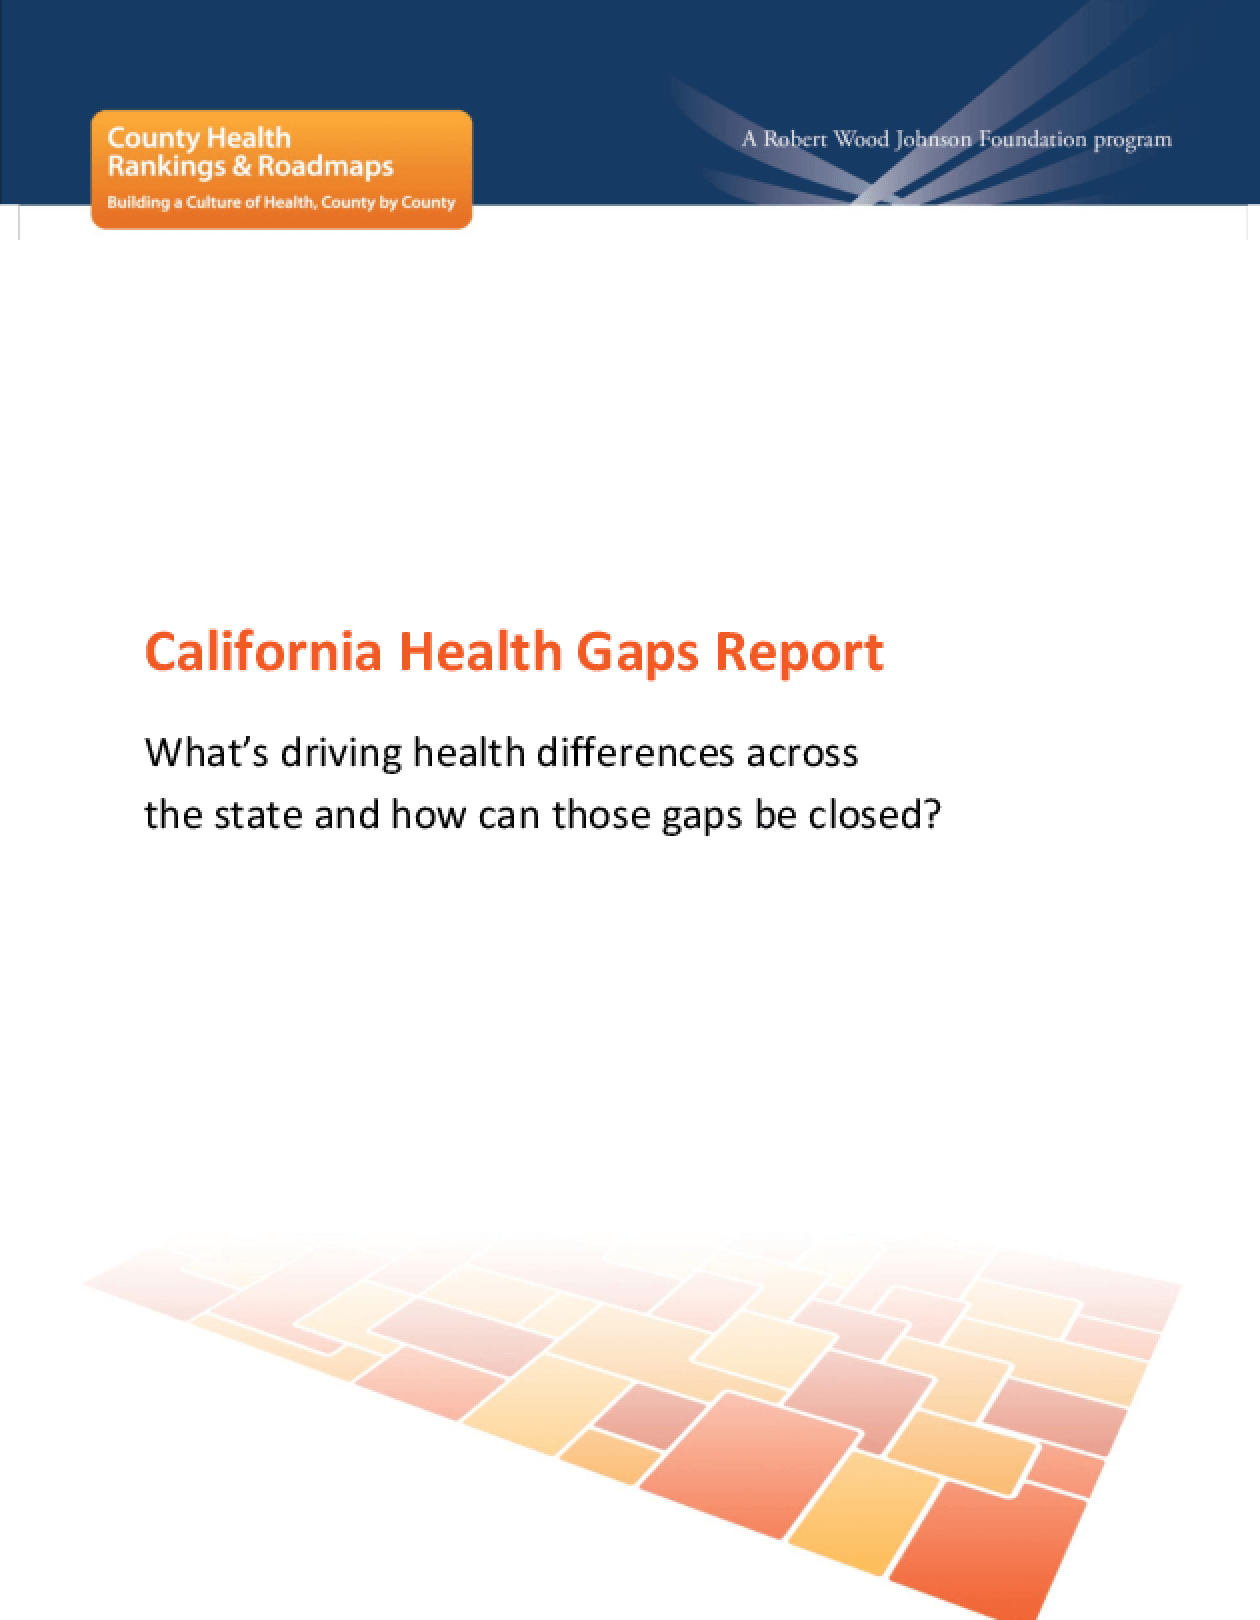 California Health Gaps Report: What's Driving Health Differences Across the State and How Can Those Gaps Be Closed?